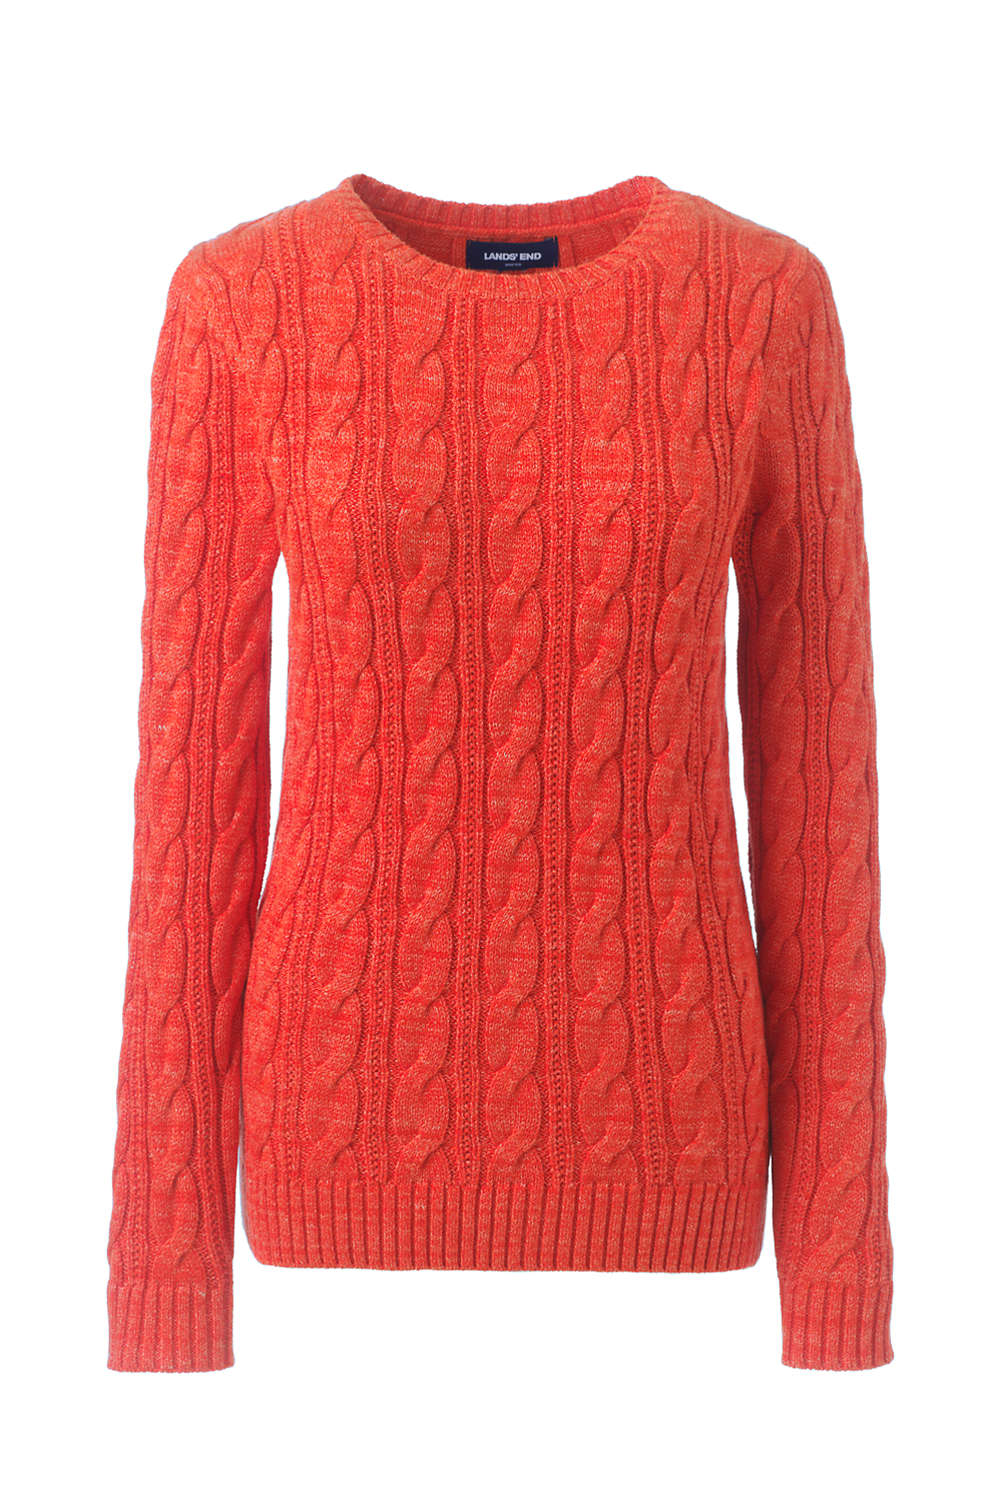 1172fe49caad Women s Drifter Cotton Cable Knit Sweater Crewneck from Lands  End